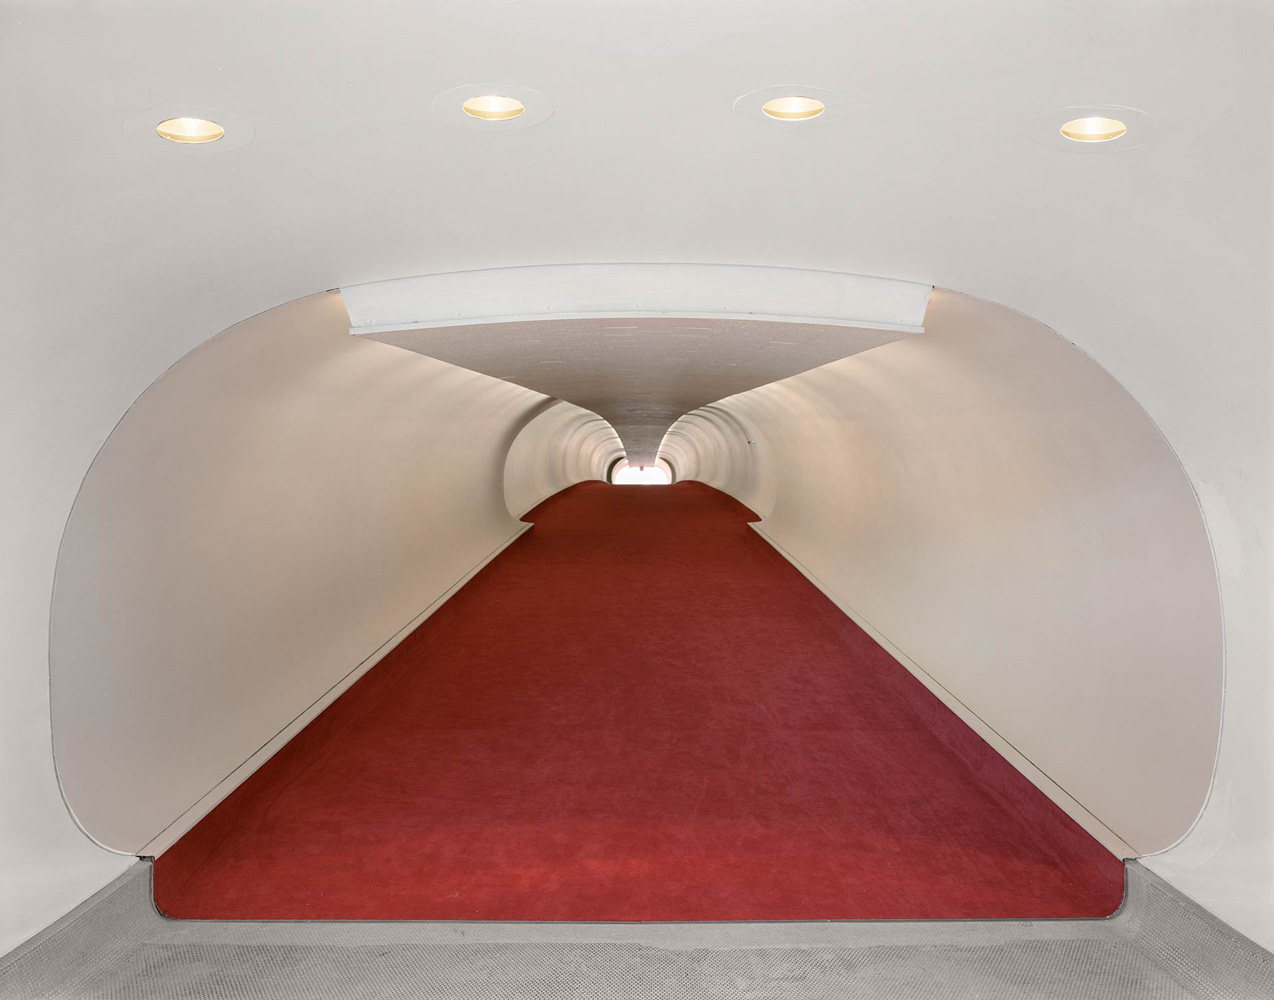 TWA Terminal No. 3, JFK International Airport, Queens, New York, 2005-2007, by David Leventi. Dibond print of a red carpeted terminal hallway.